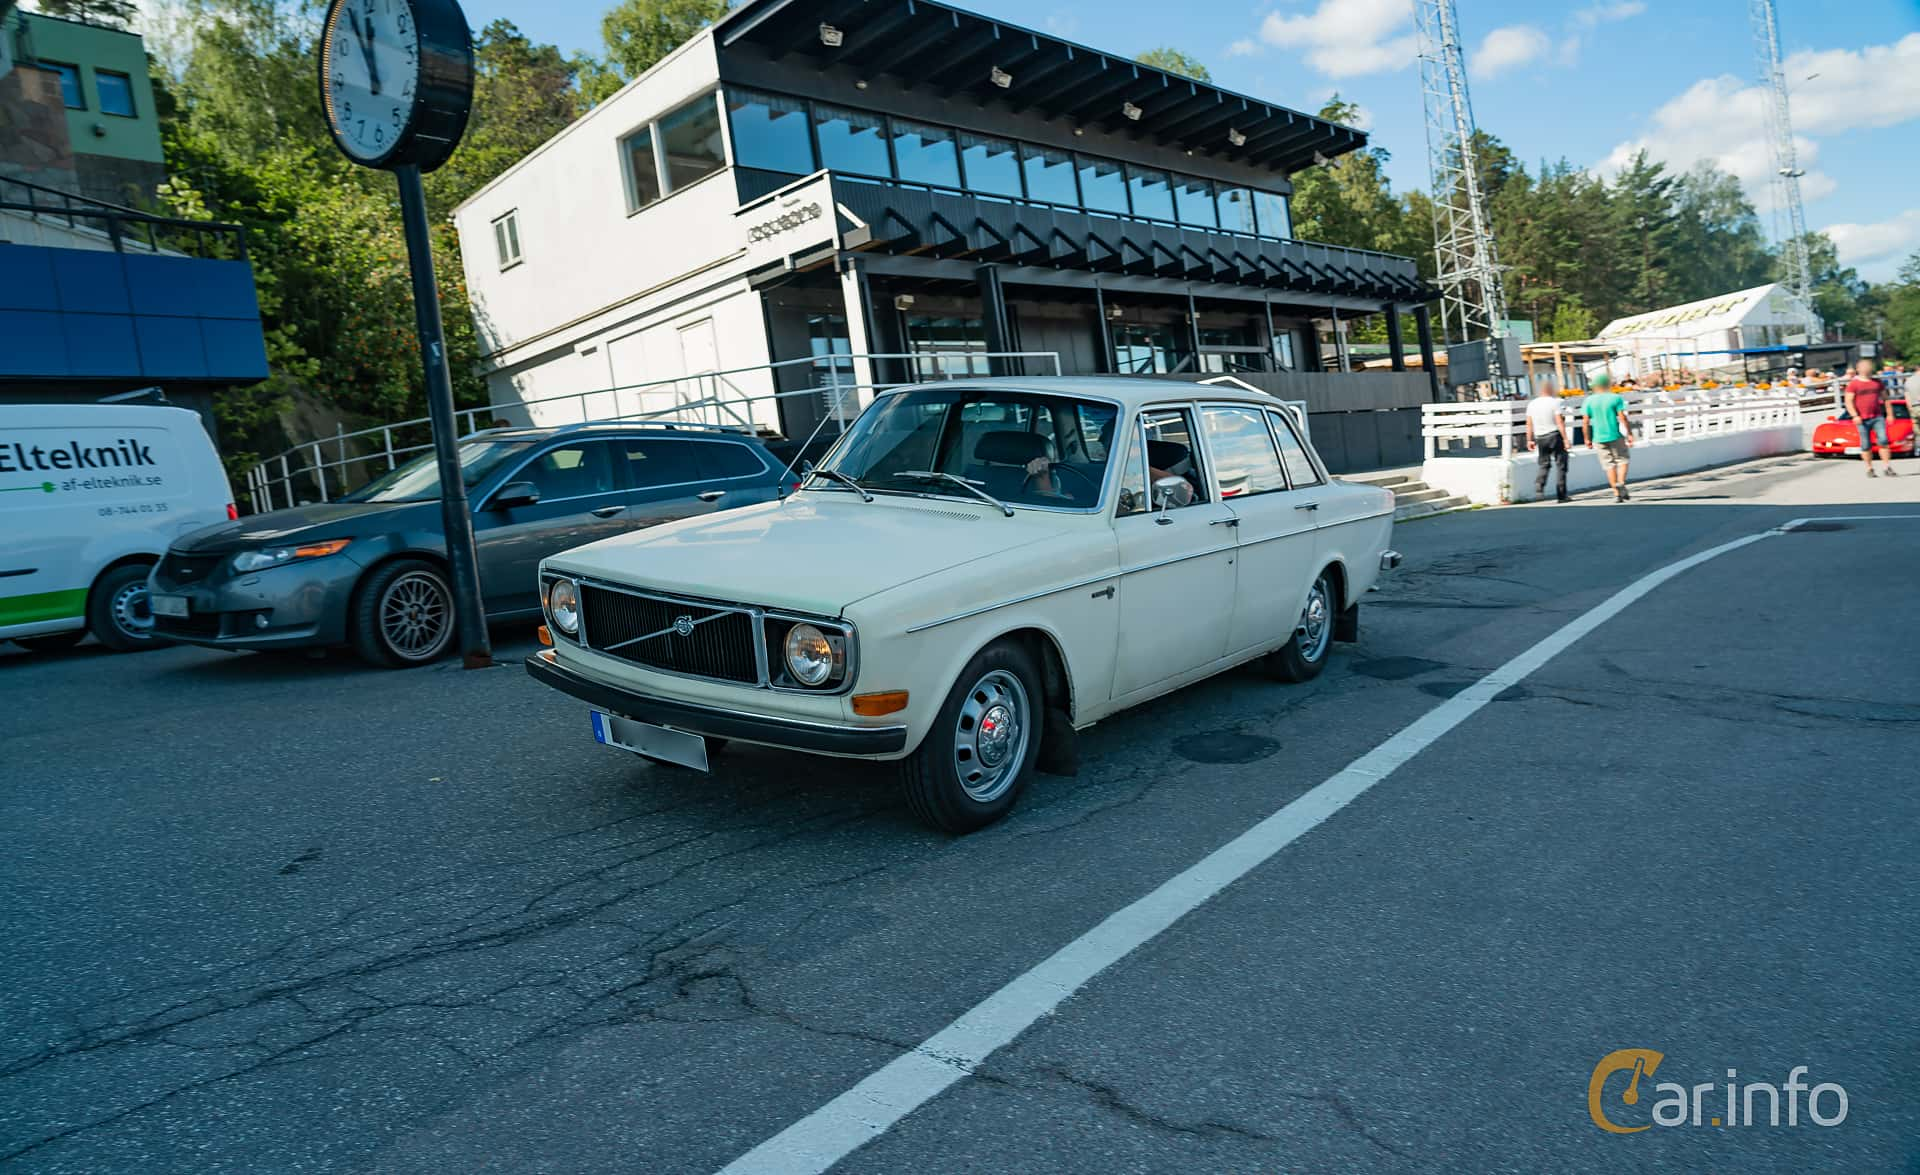 Volvo 144 2.0 Manual, 82hp, 1971 at Stockholm Vintage & Sports Car meet 2019